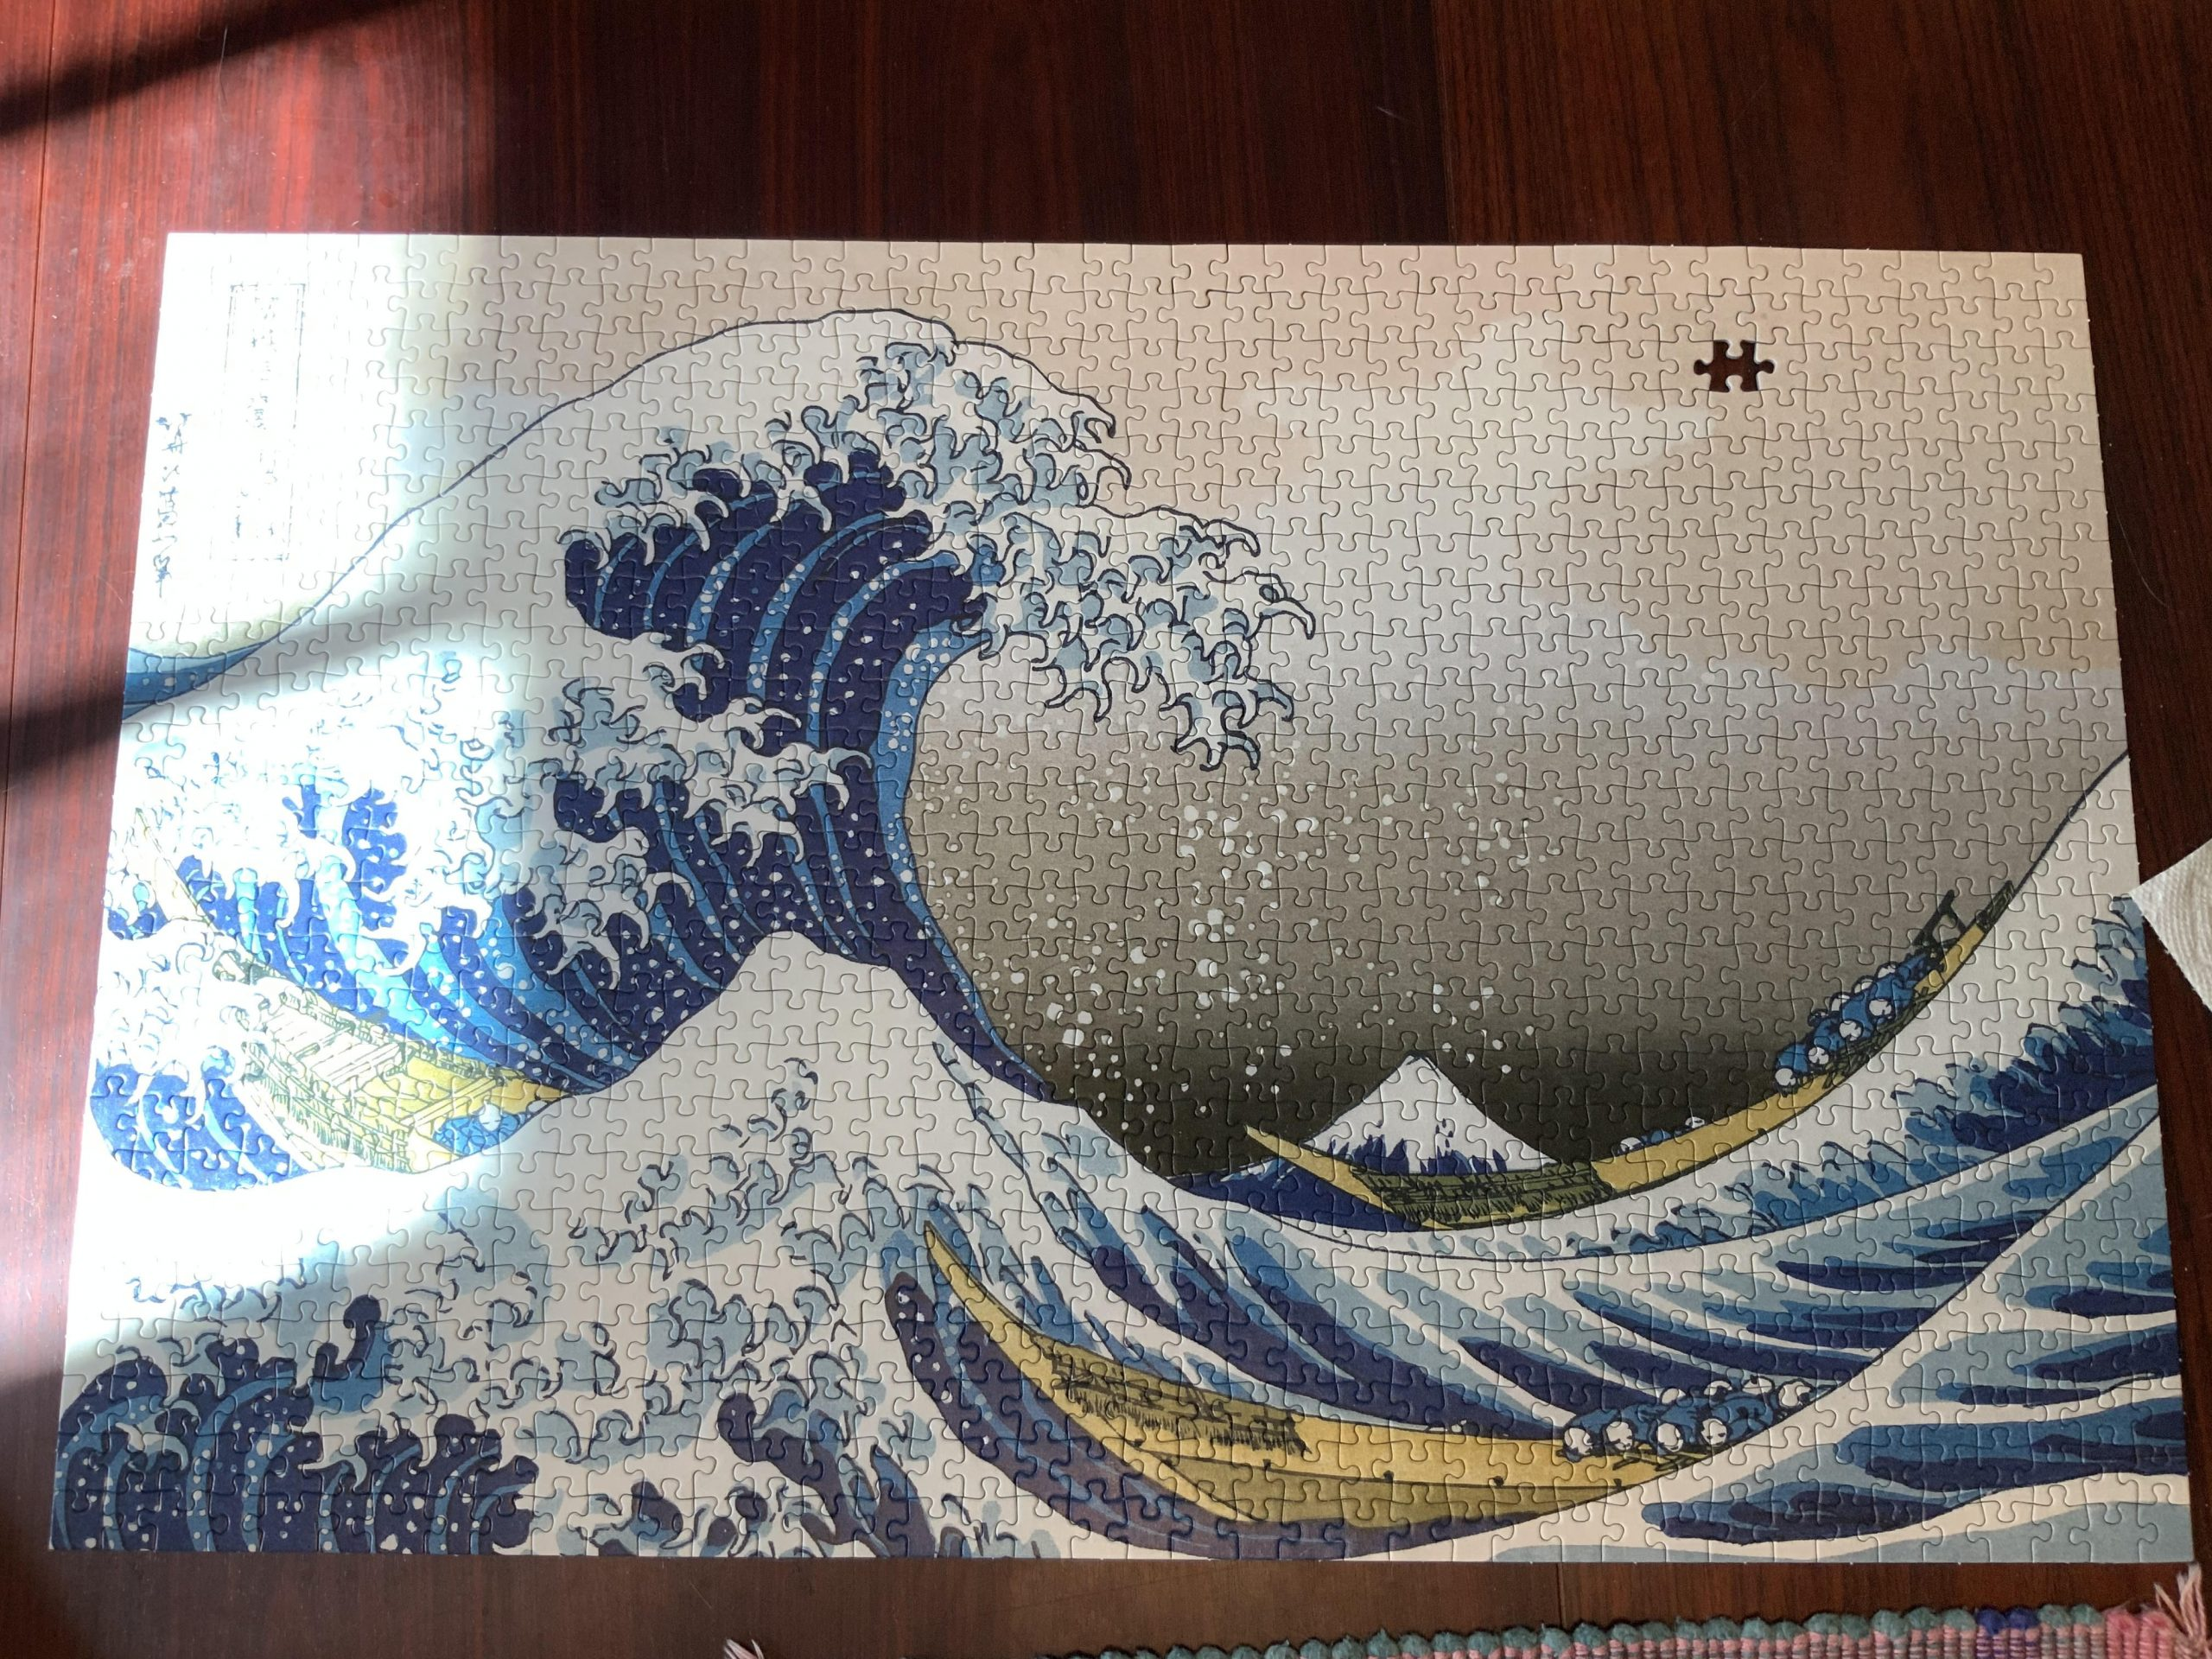 """The Great Wave off Kanagawa"" by Katsushika Hokusai puzzle - piece missing"